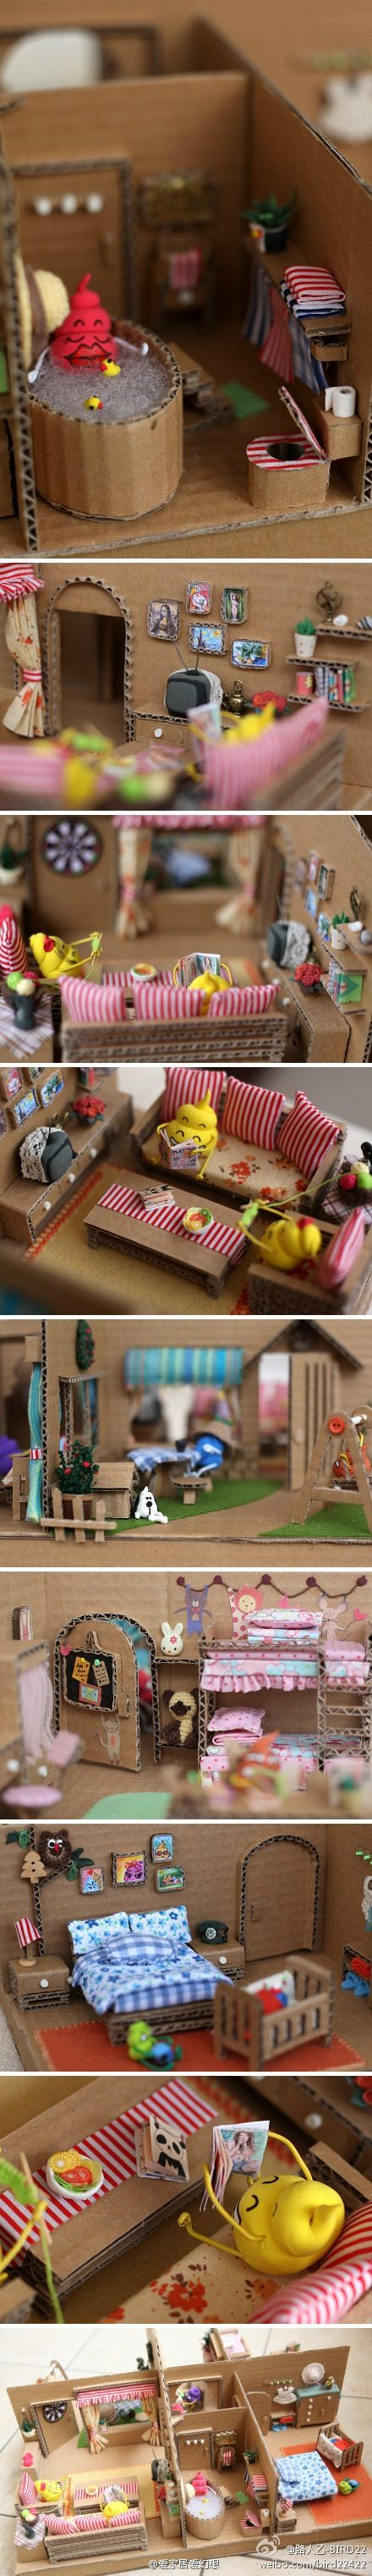 Little dream house. The rubber ducks are so cute and the little playboy is too funny